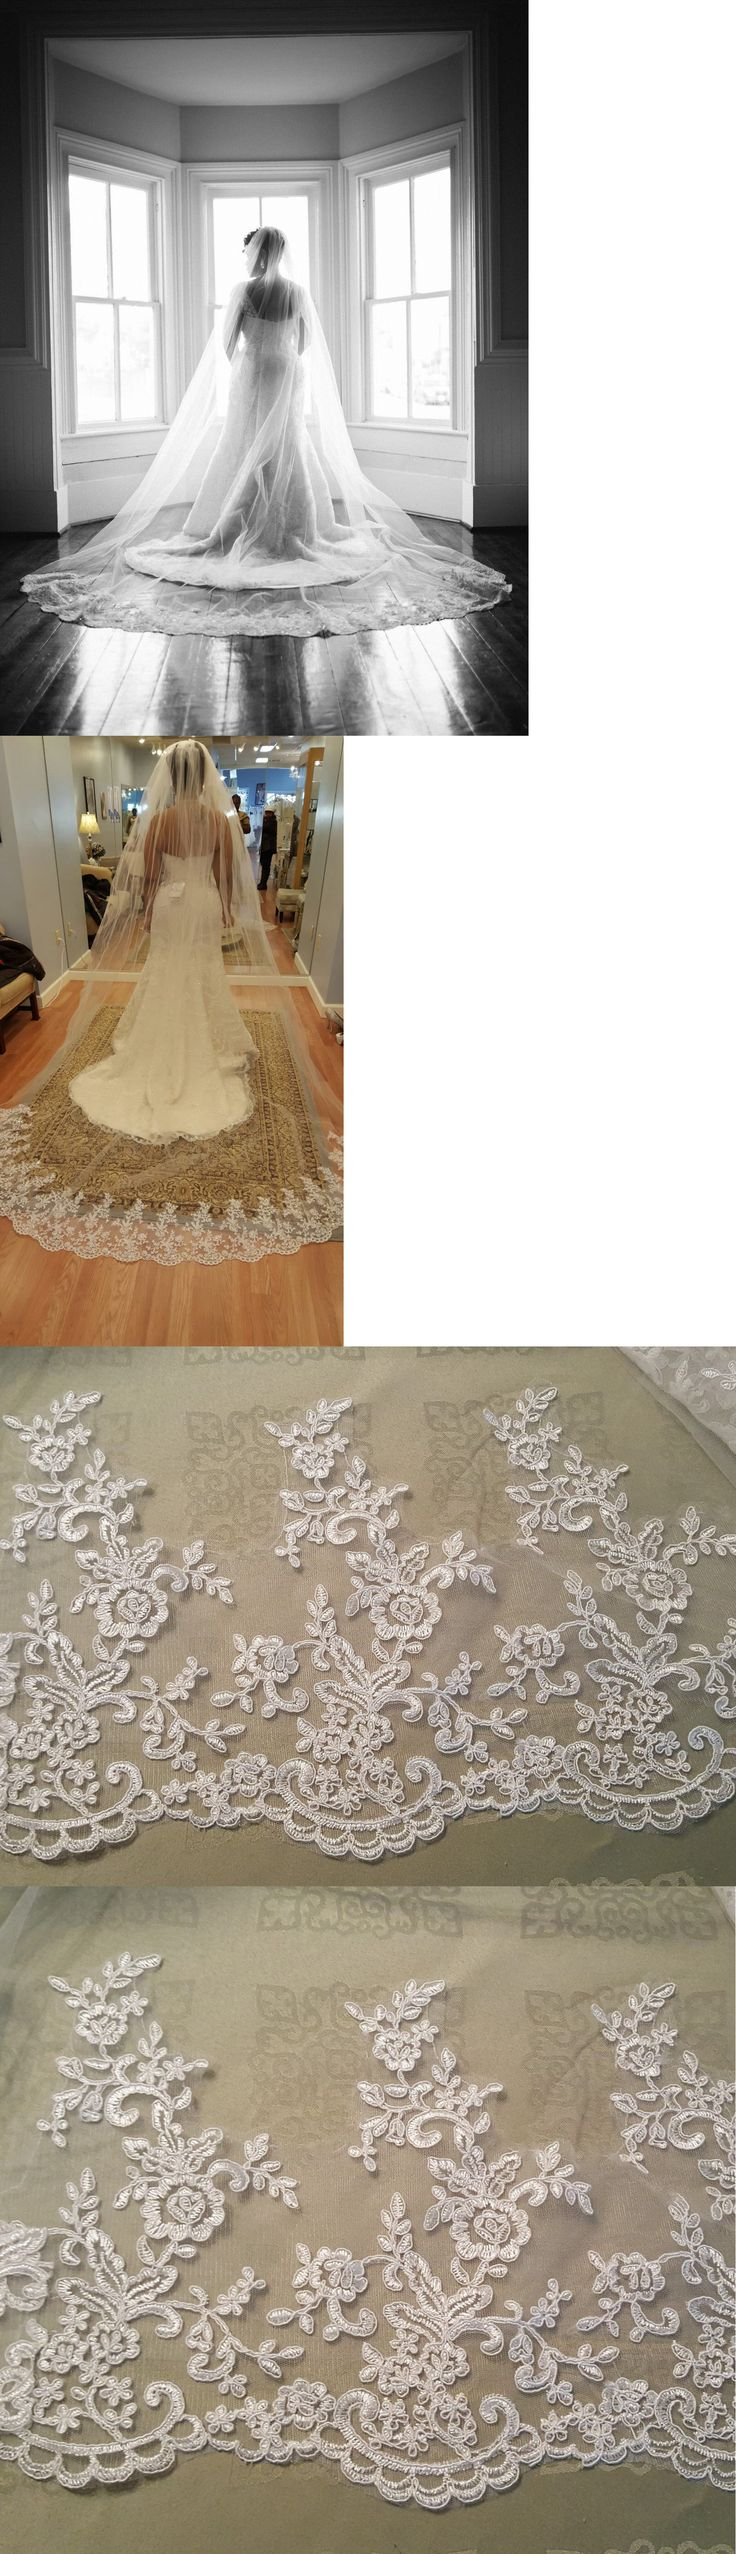 Bridal Accessories: Wedding Cathedral Veil Light Ivory Metal Comb 118 Long By 108 Wide -> BUY IT NOW ONLY: $76.49 on eBay!